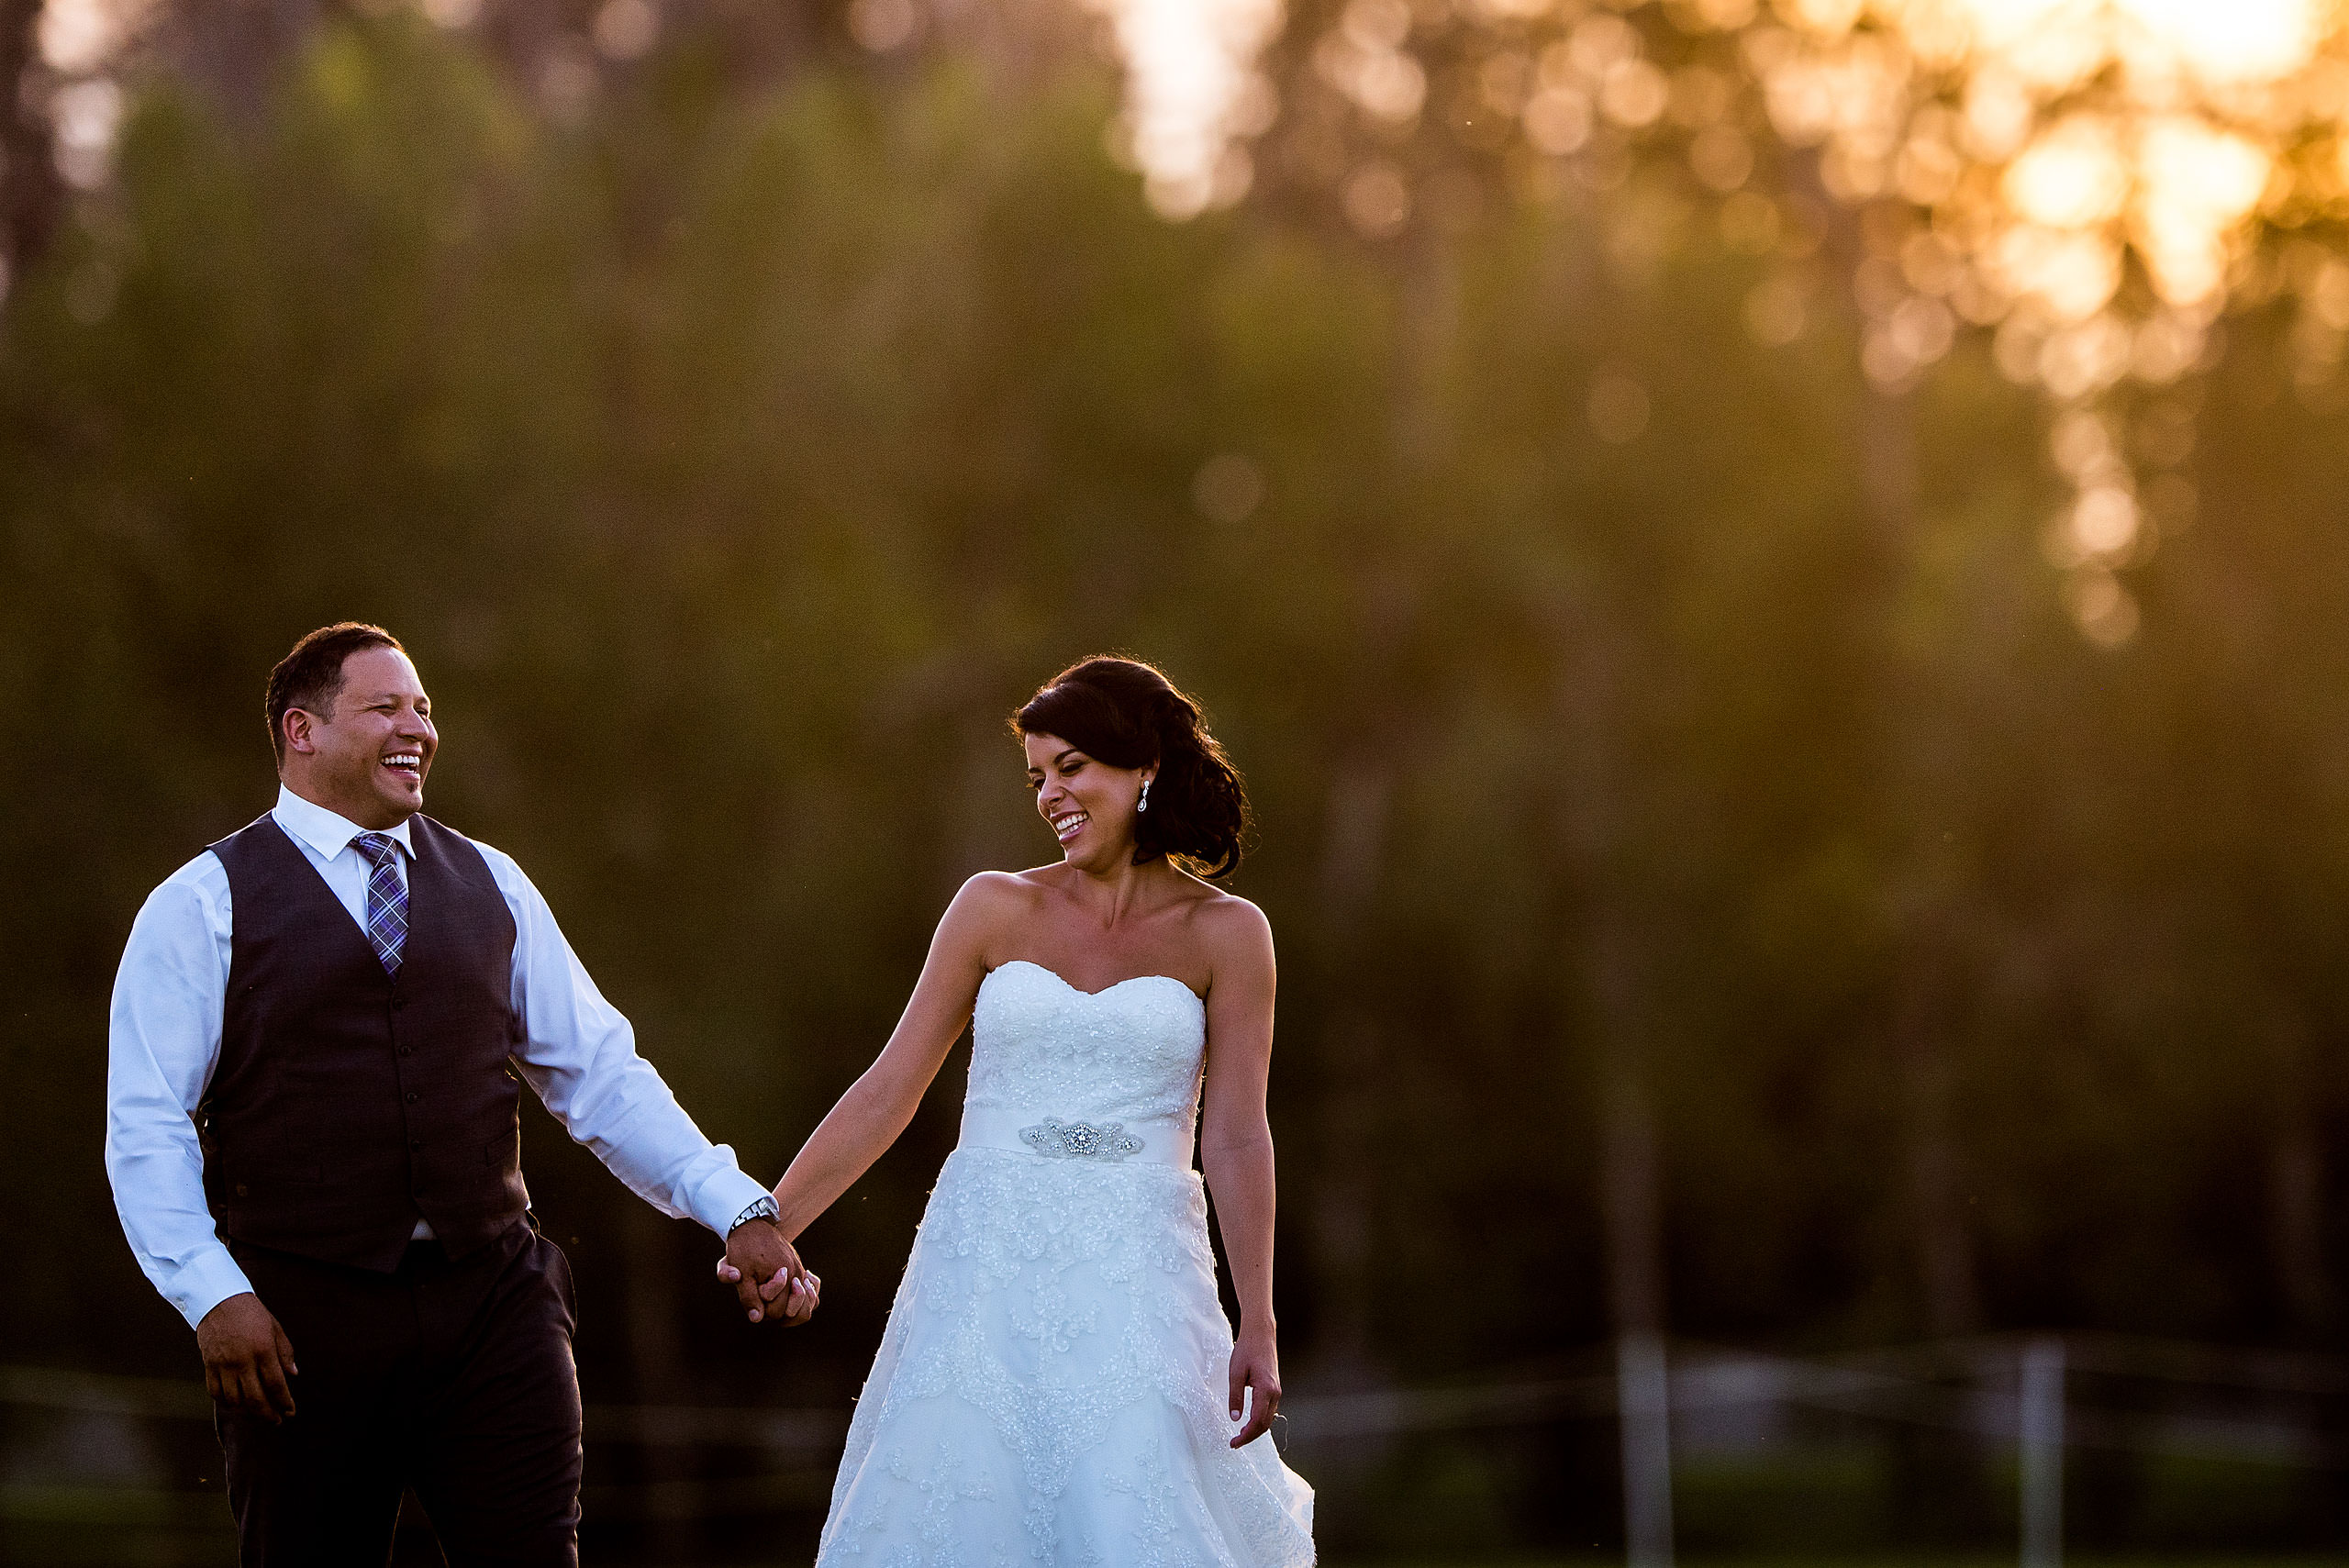 a bride and groom smiling at each other while walking in a field by Edmonton wedding photographer sean leblanc